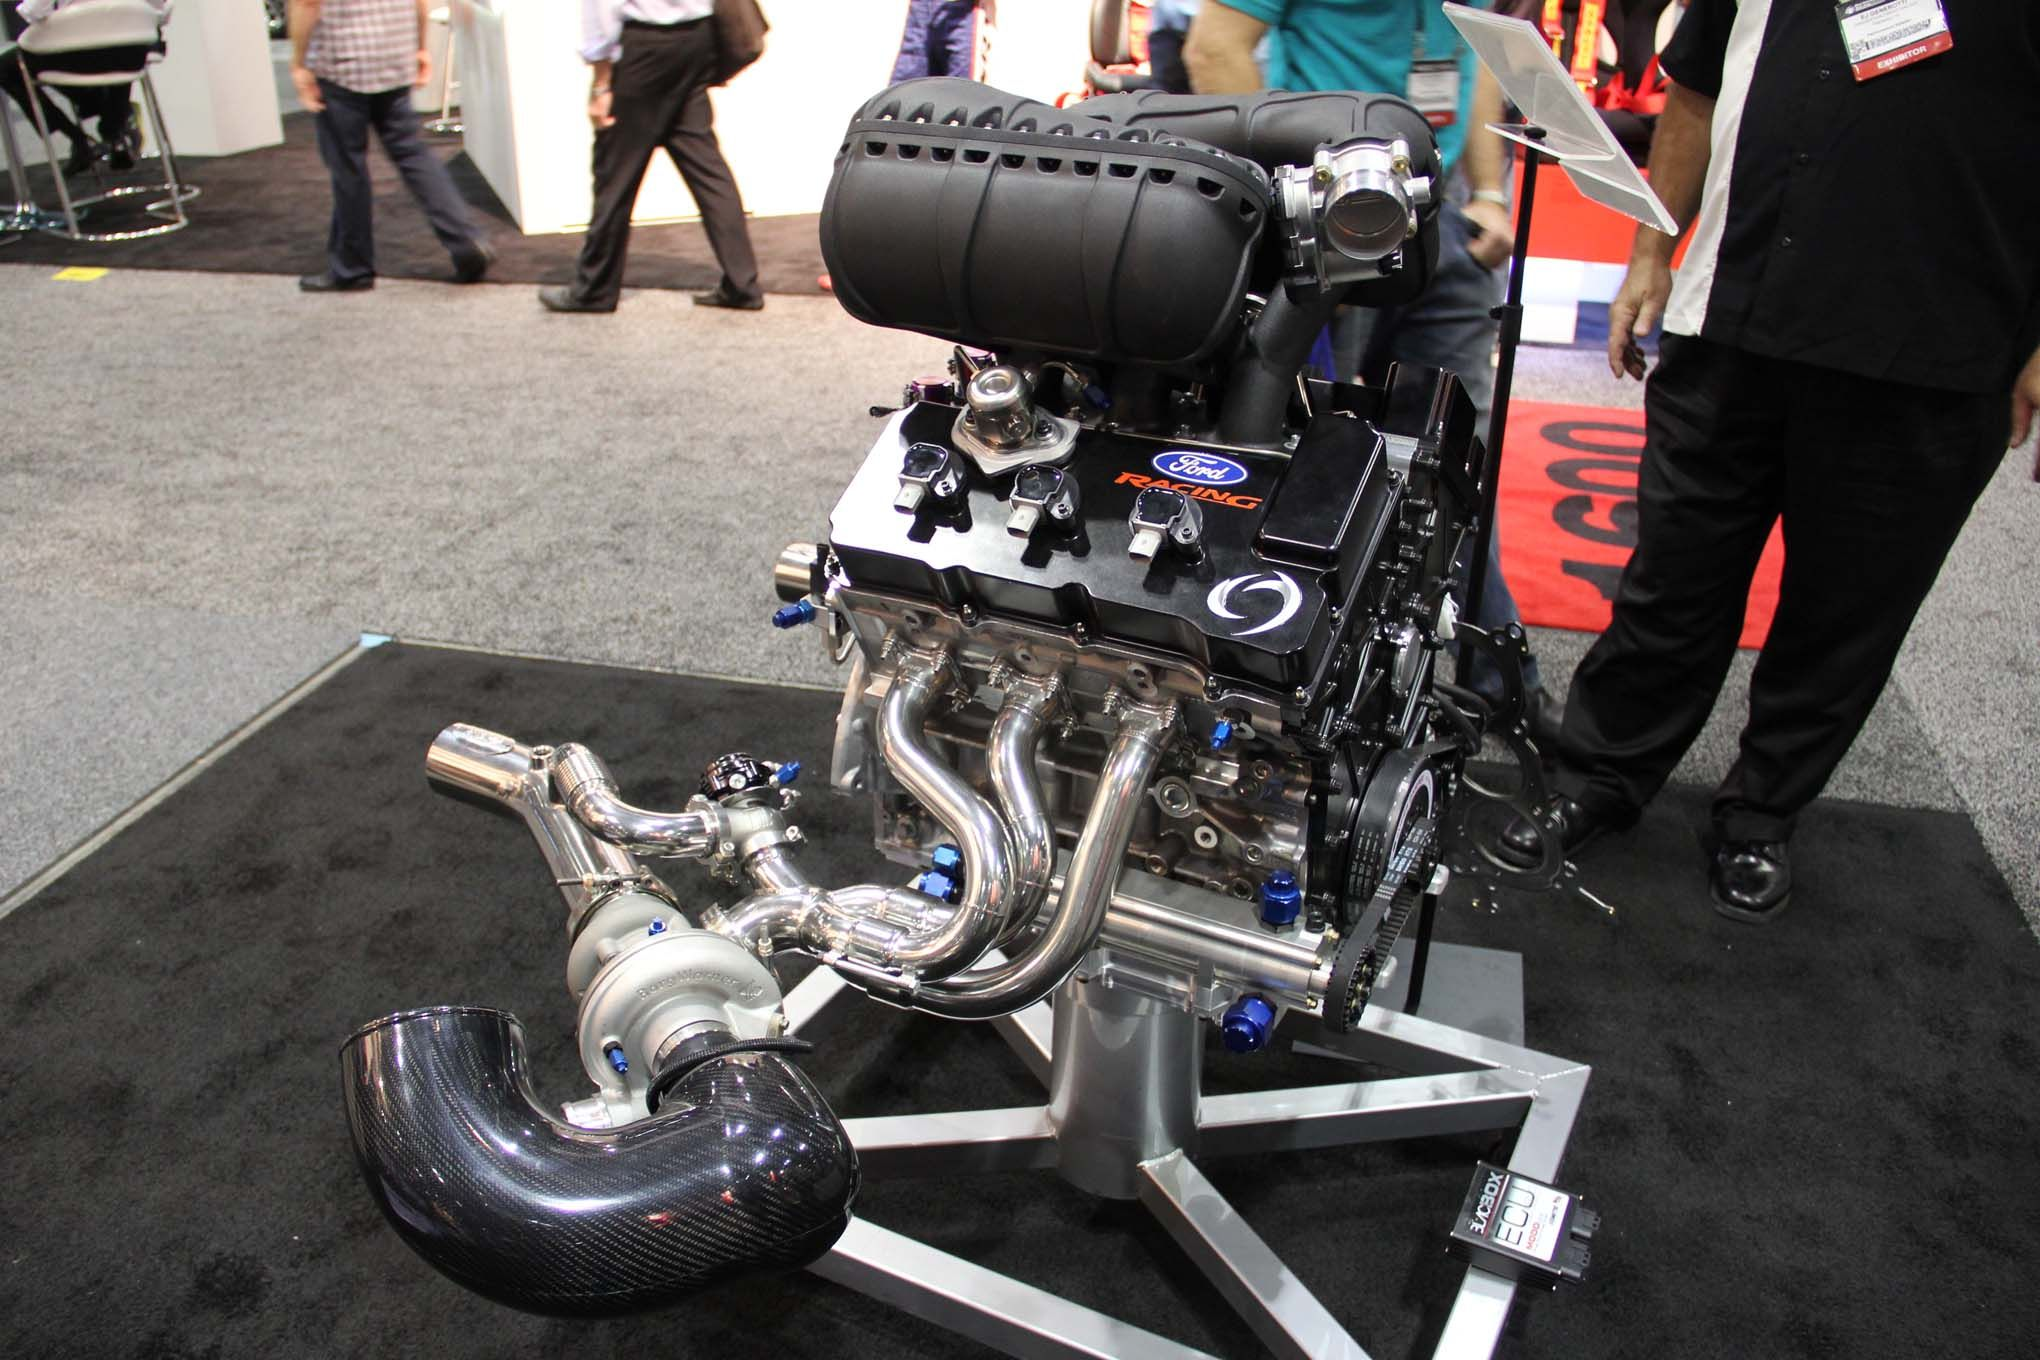 Ford 3.5L Twin-Turbo V6 engine